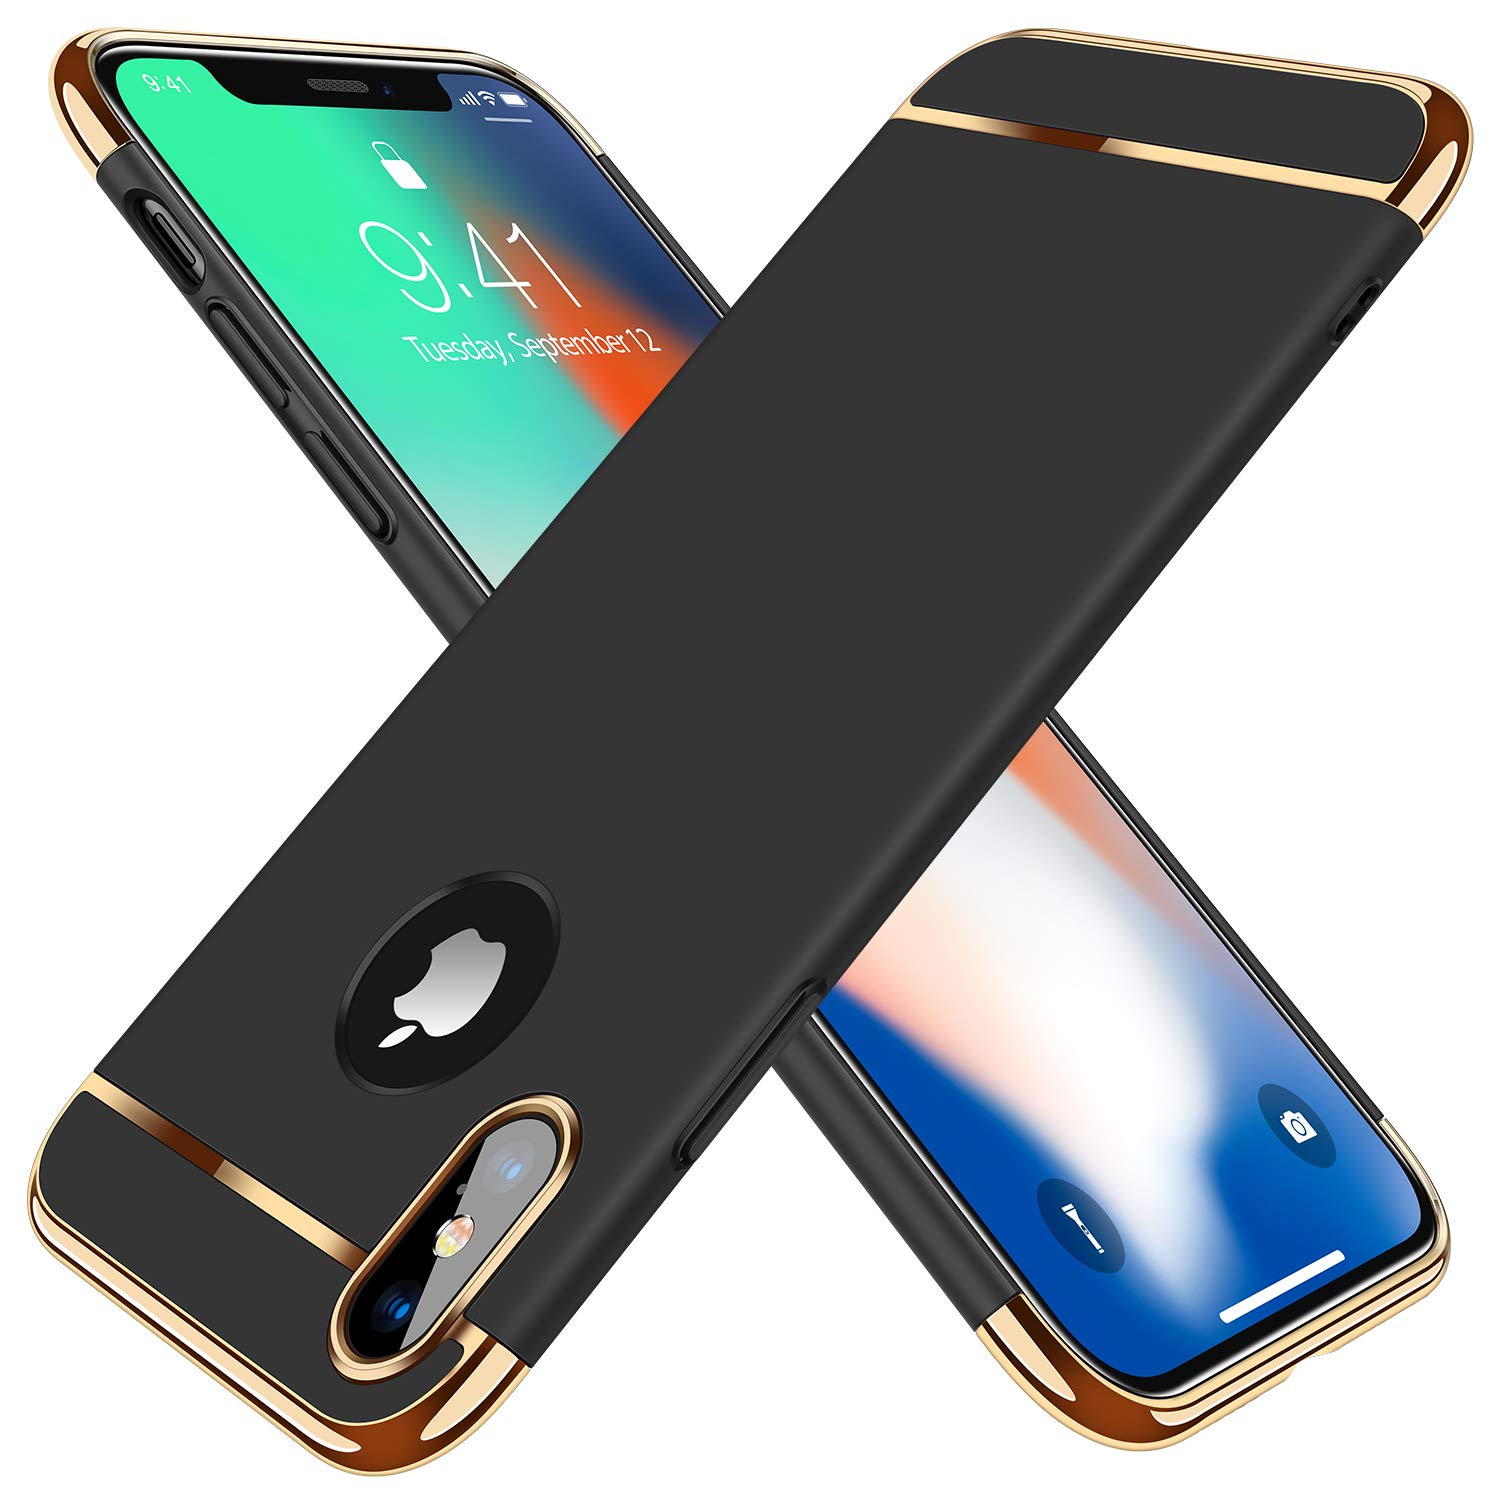 530430c0686d5f TORRAS iPhone X Case, iPhone Xs Case, 3 in 1 Hybrid Ultra Thin Slim Hard  Case with Anti-scratch Matte Finish Protective Plastic Phone Case Cover for  iPhone ...